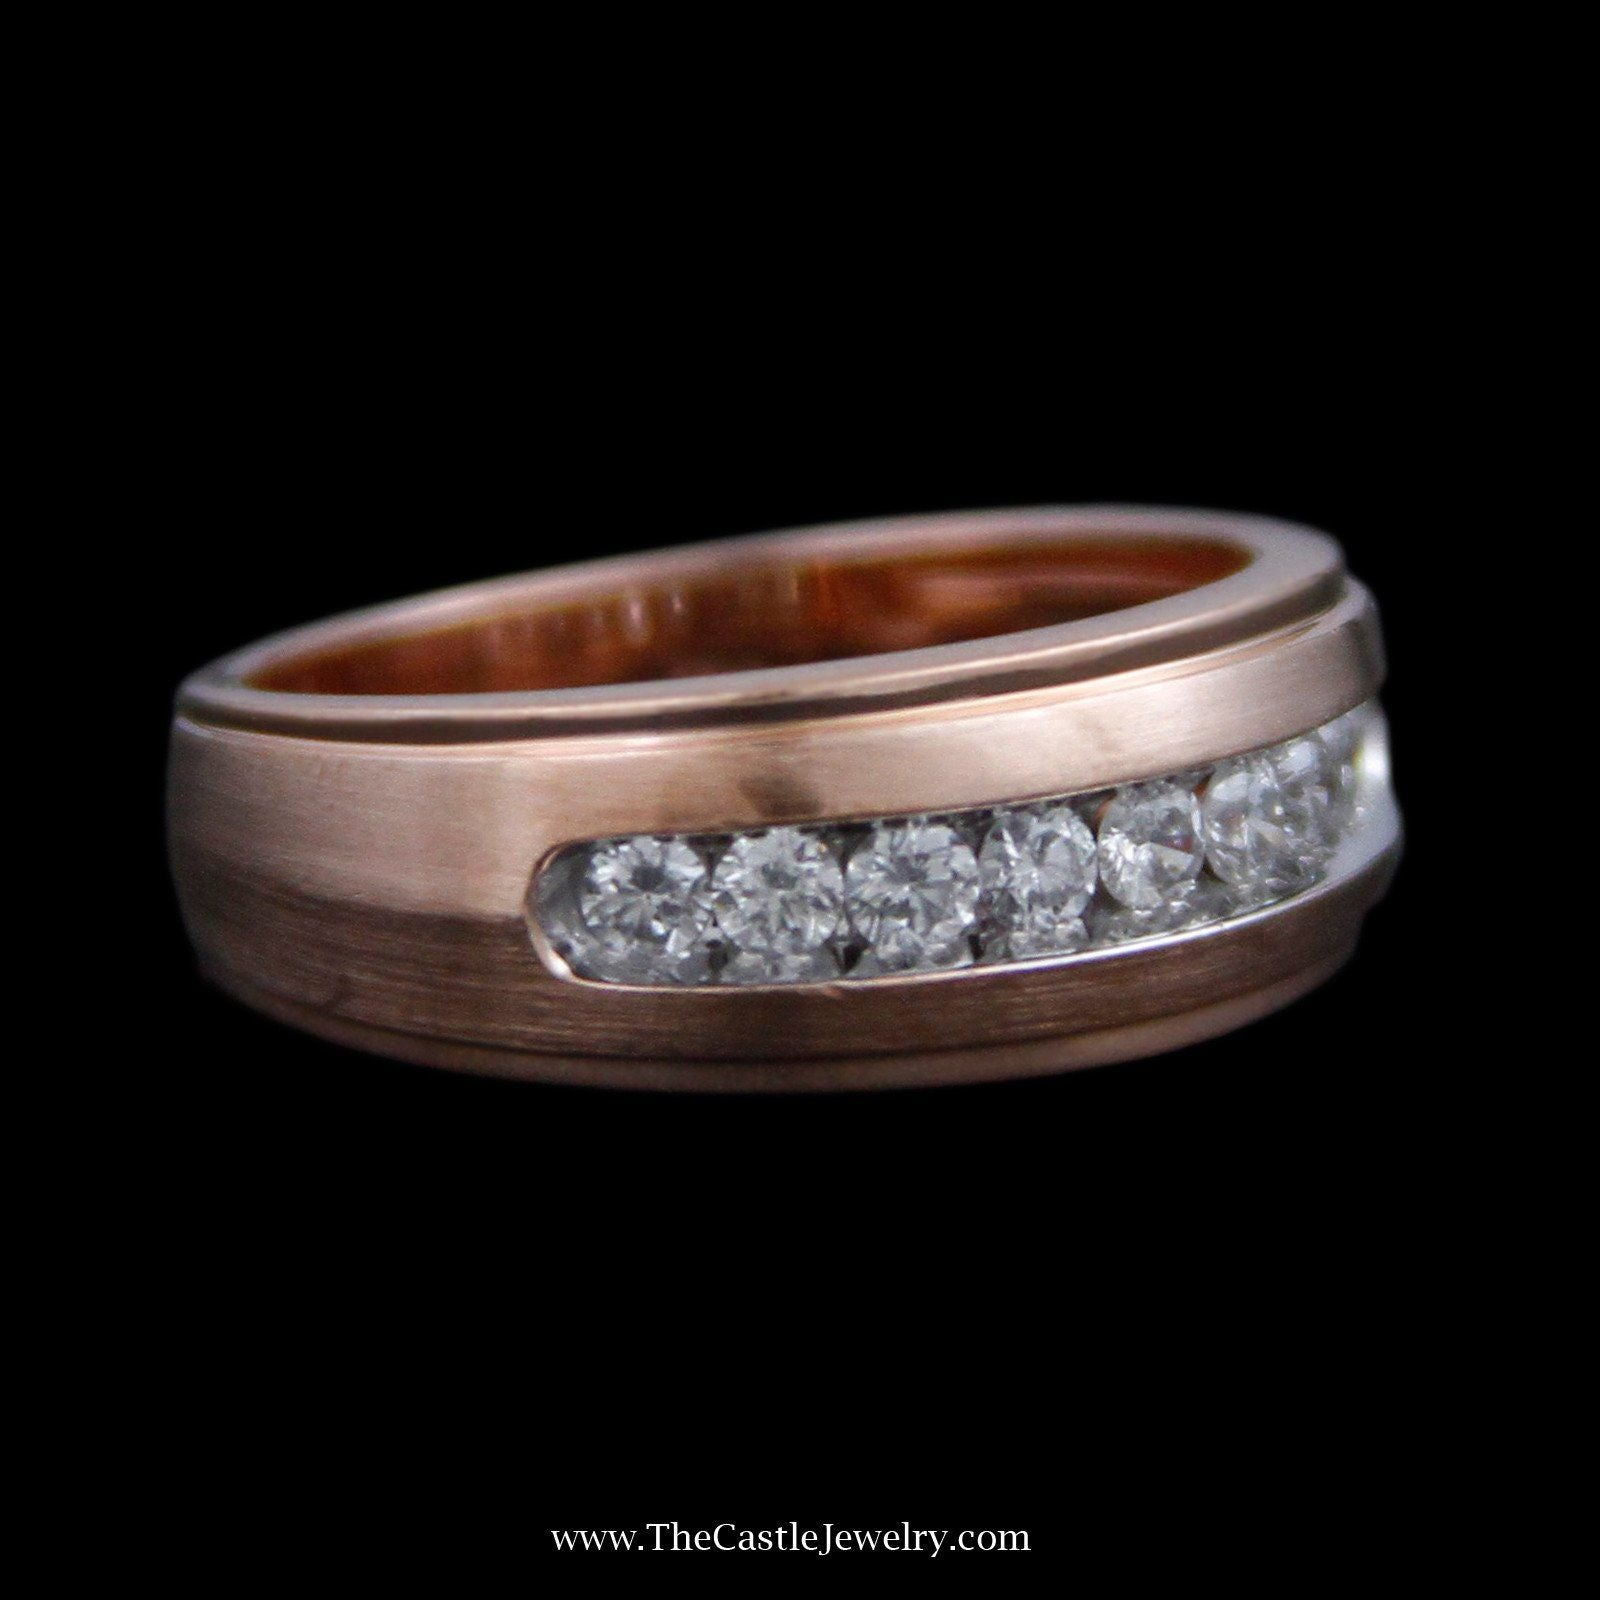 Channel Set Diamond Wedding Band w/ Ridged edges & Brushed Sides in Rose Gold-2